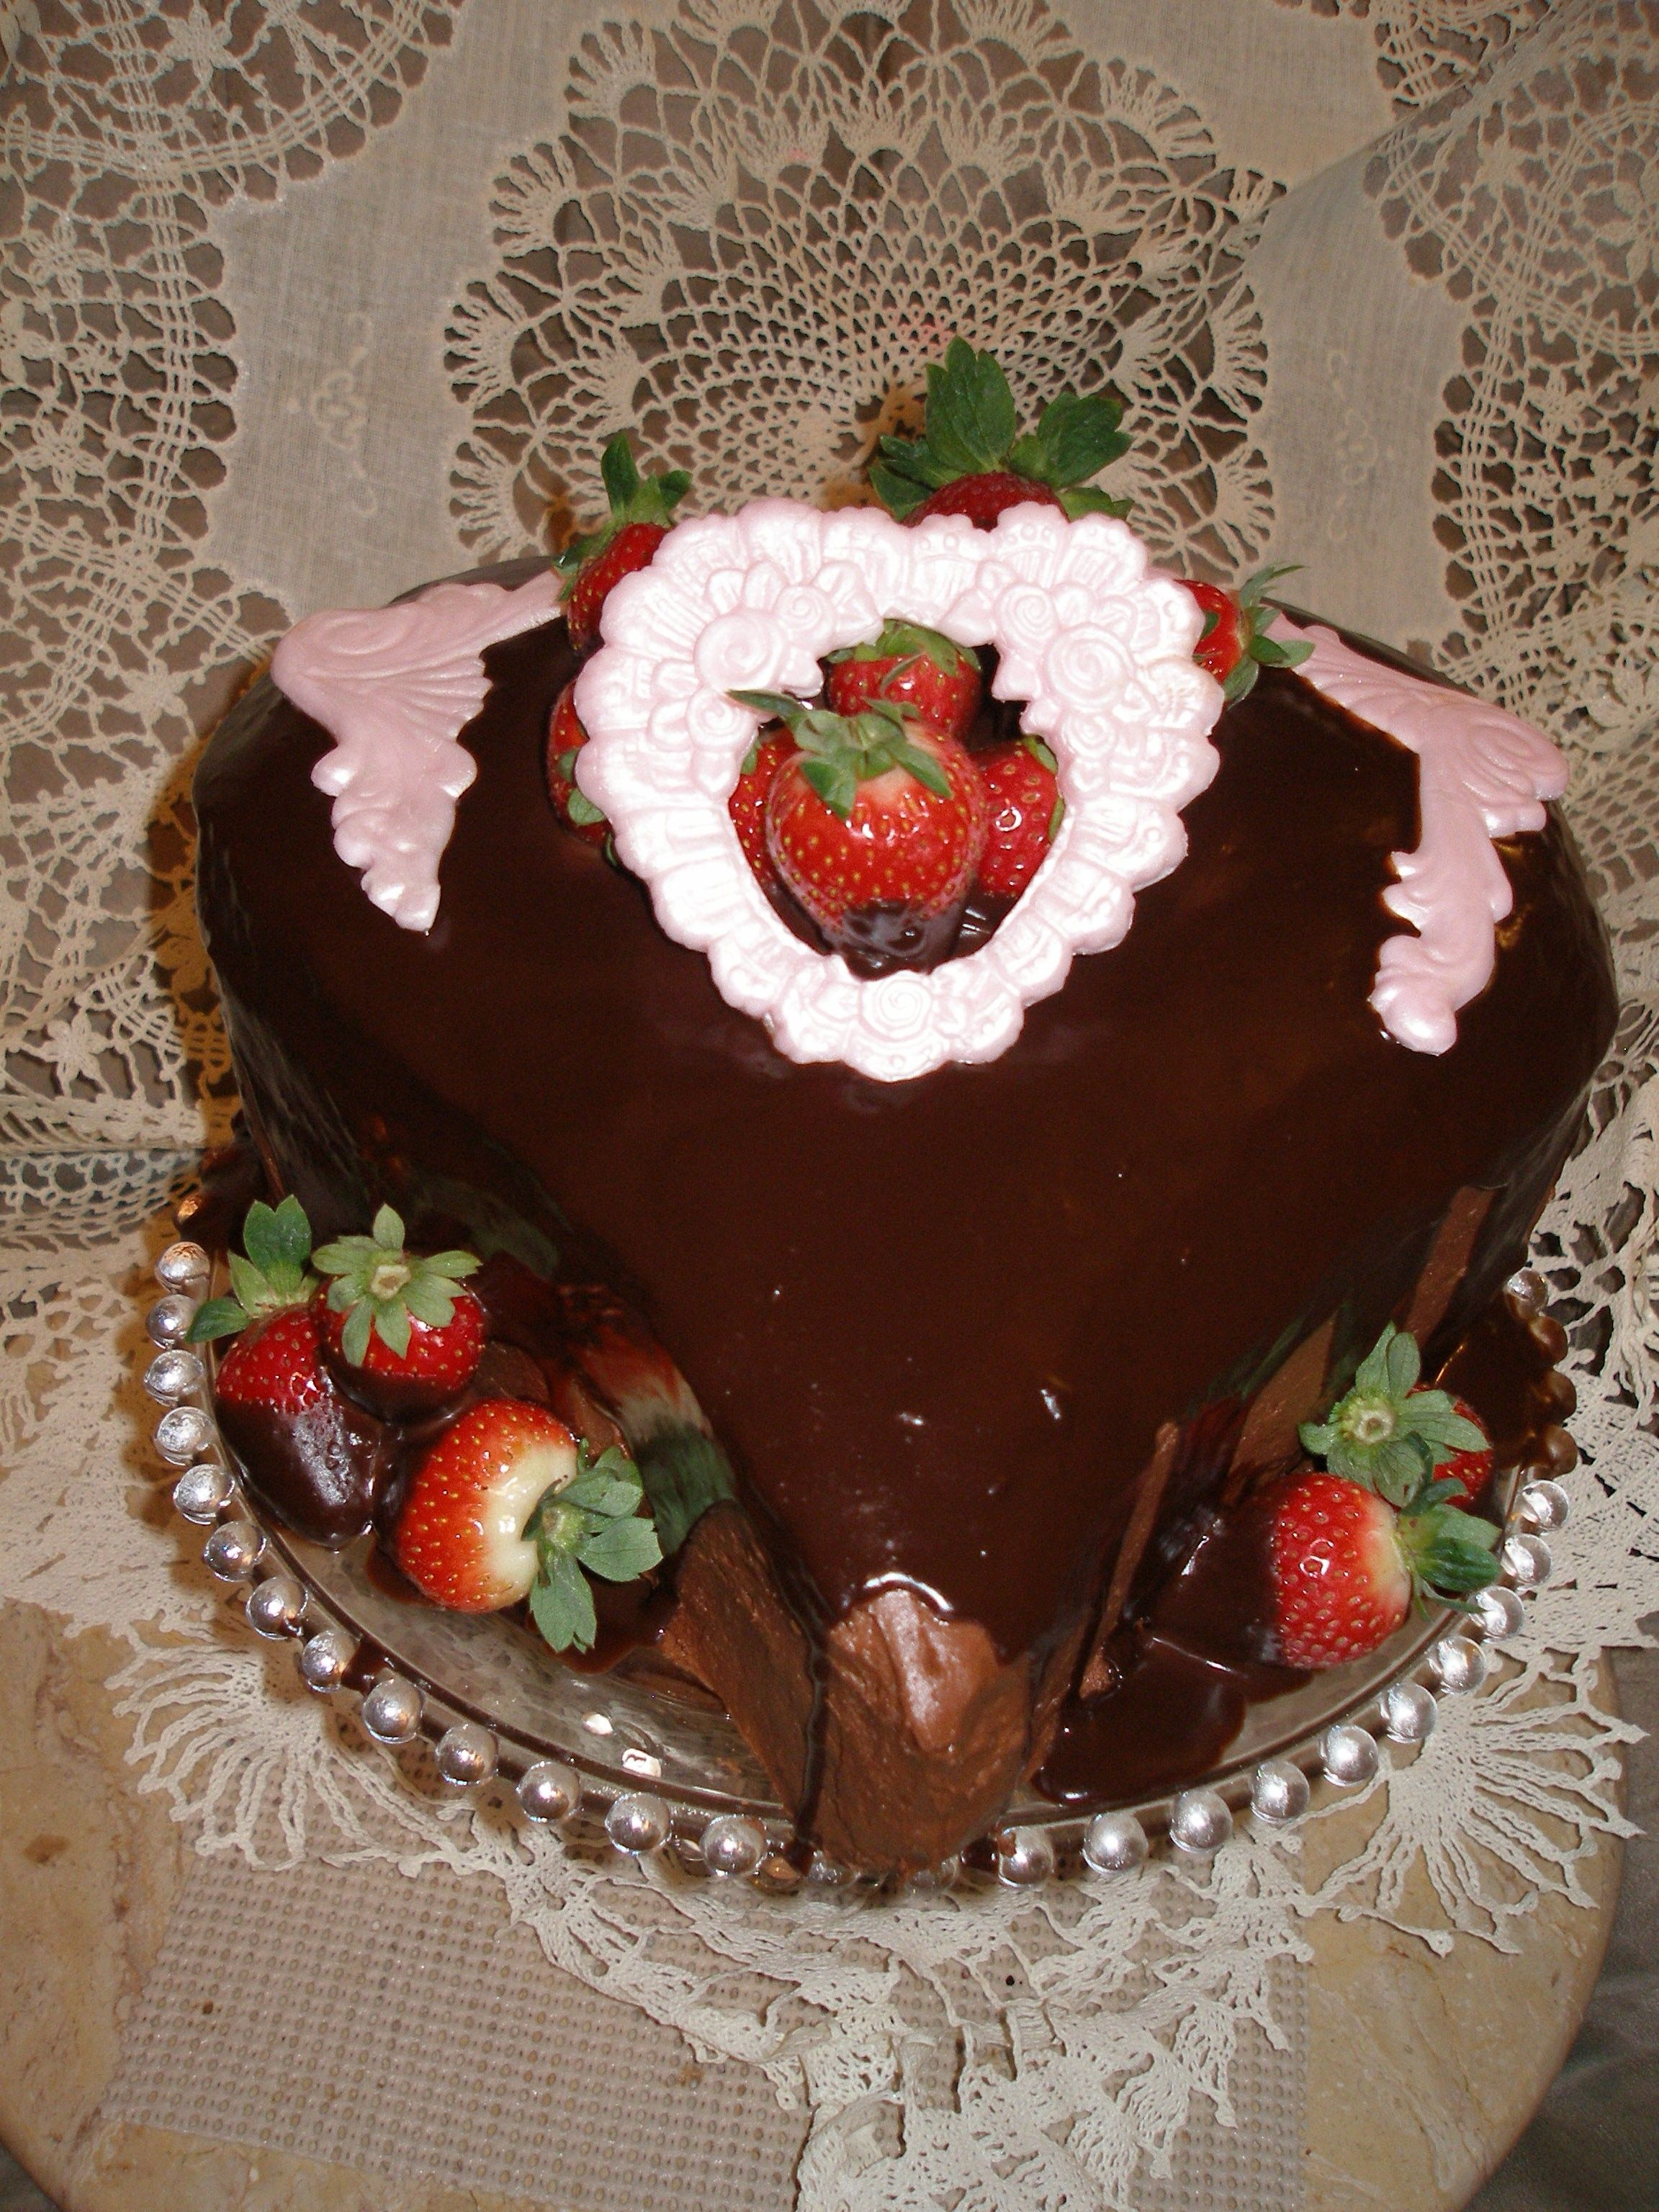 Decadent chocolate cake with bavarian creme/chocolate ganache filling along with one layer of raspberry filling. Covered by chocolate buttercream and chocolate ganache drizzle. Garnished by ganache dipped strawberries and fondant accents. It was a...